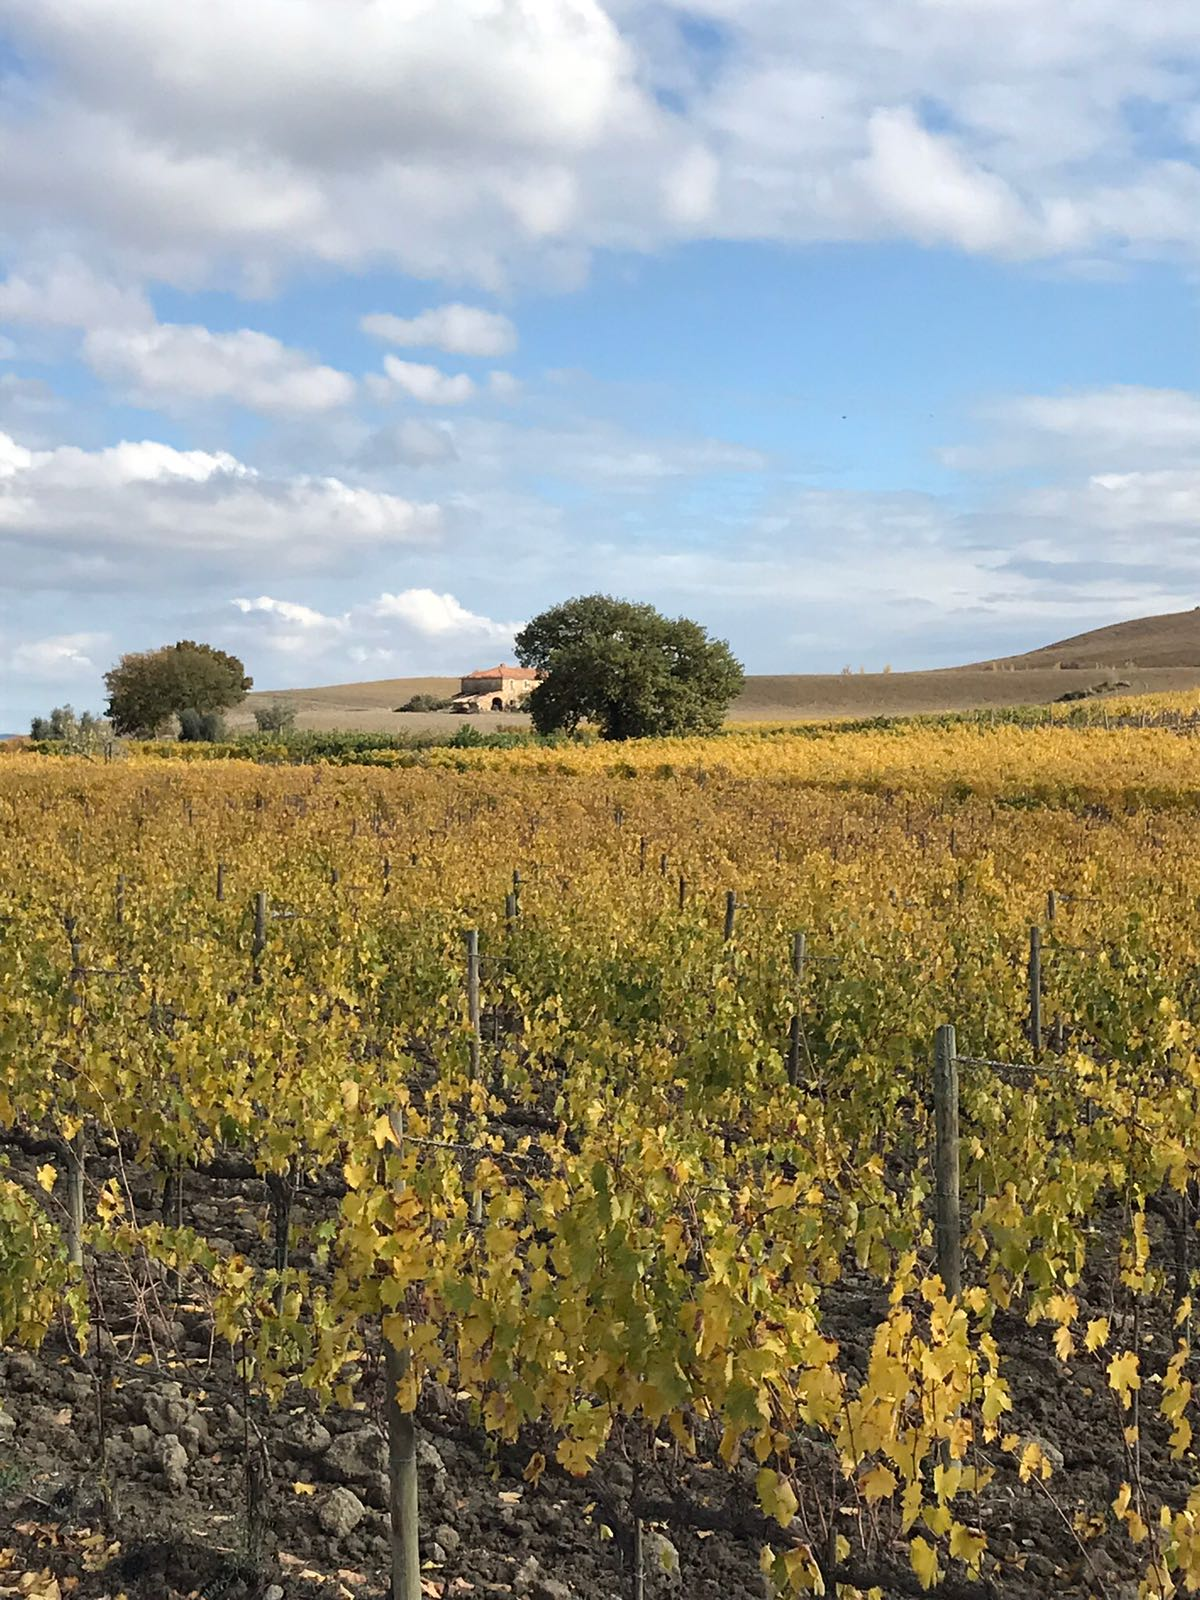 Vineyard in the early bit of autumn when all the leaves are still on but yellow